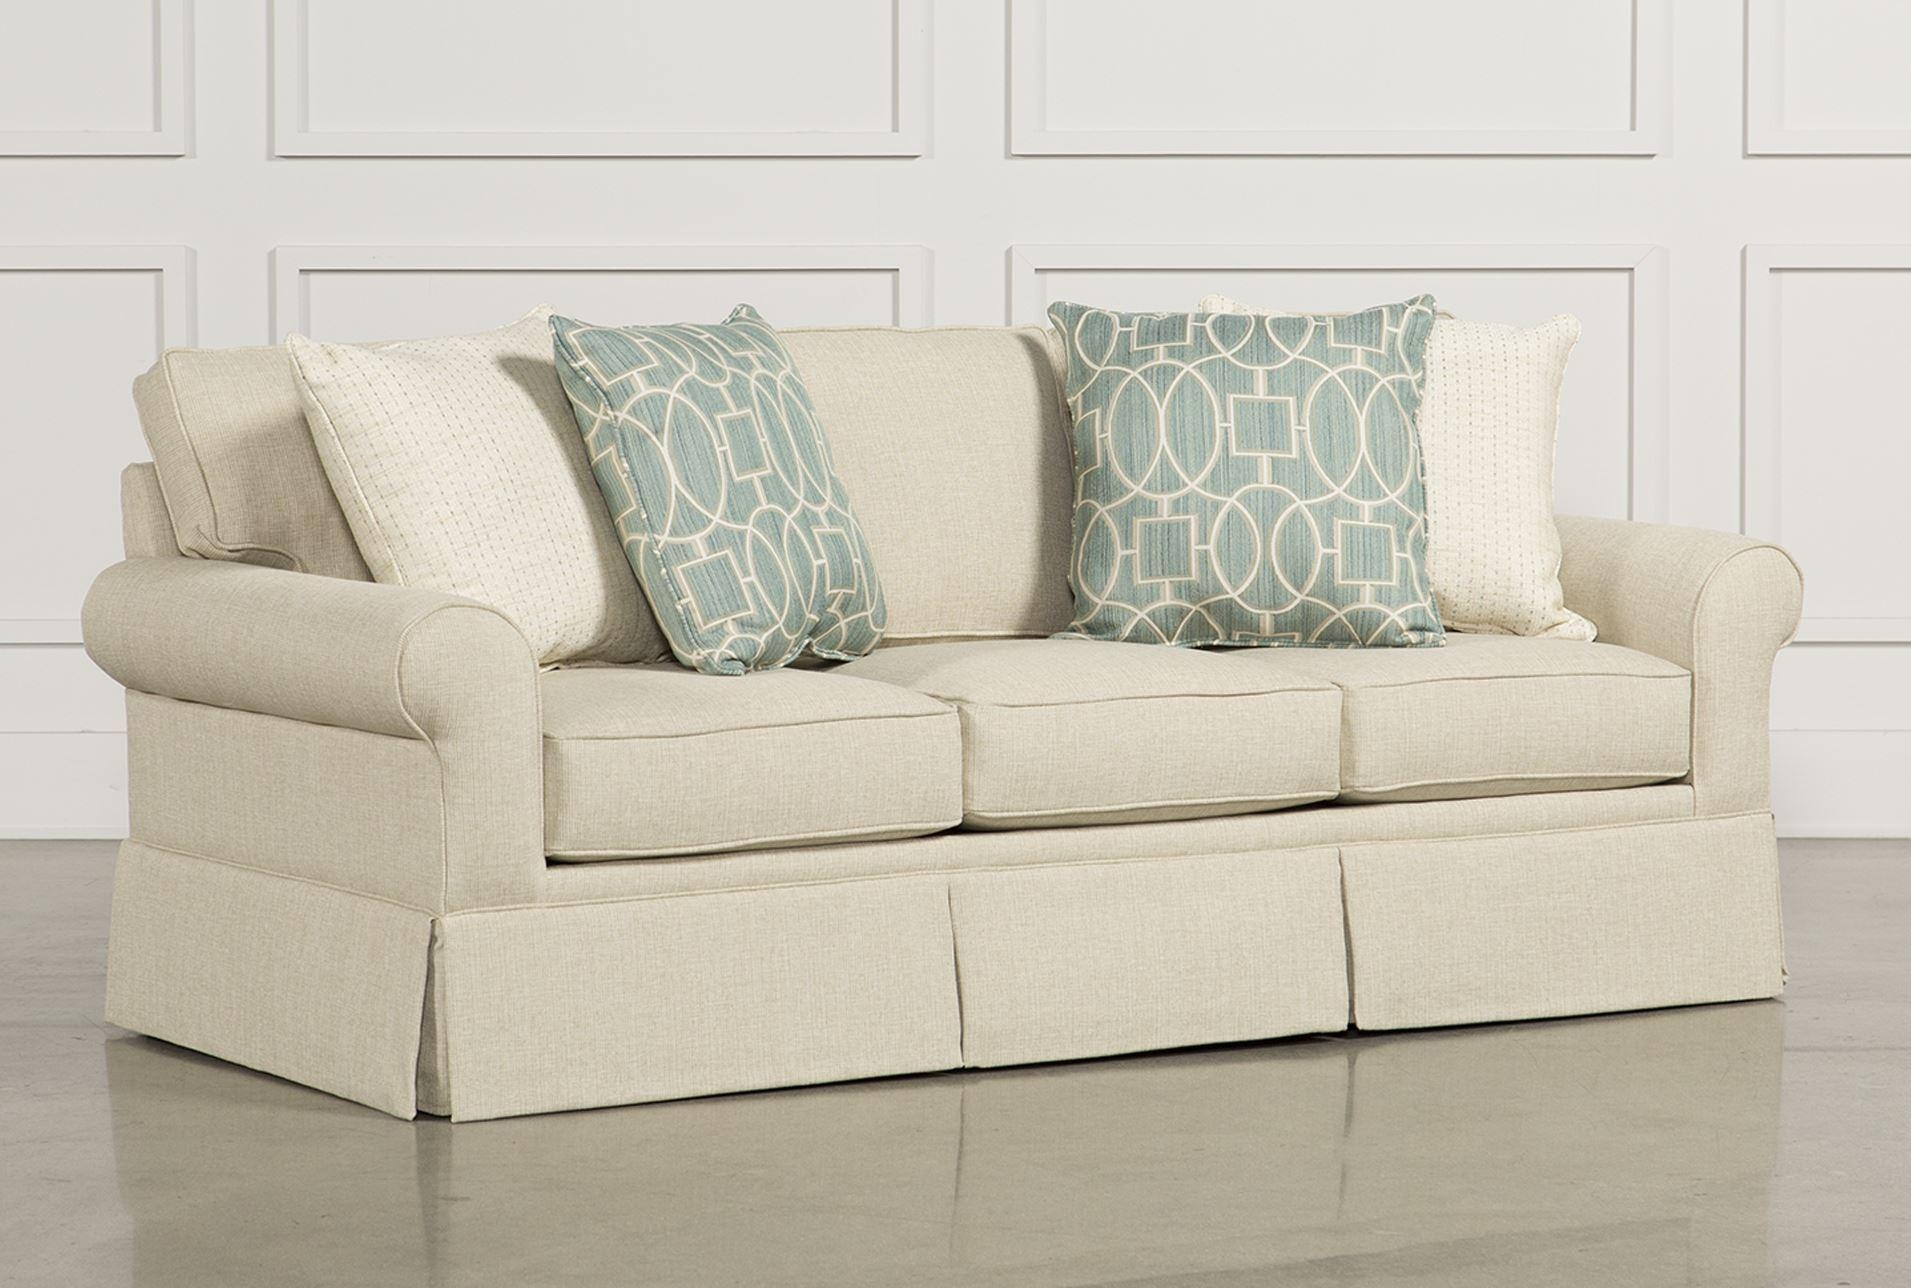 Fresh White Fabric Sofa 31 On Modern Sofa Ideas With White Fabric Sofa Within White Fabric Sofas (Image 8 of 20)